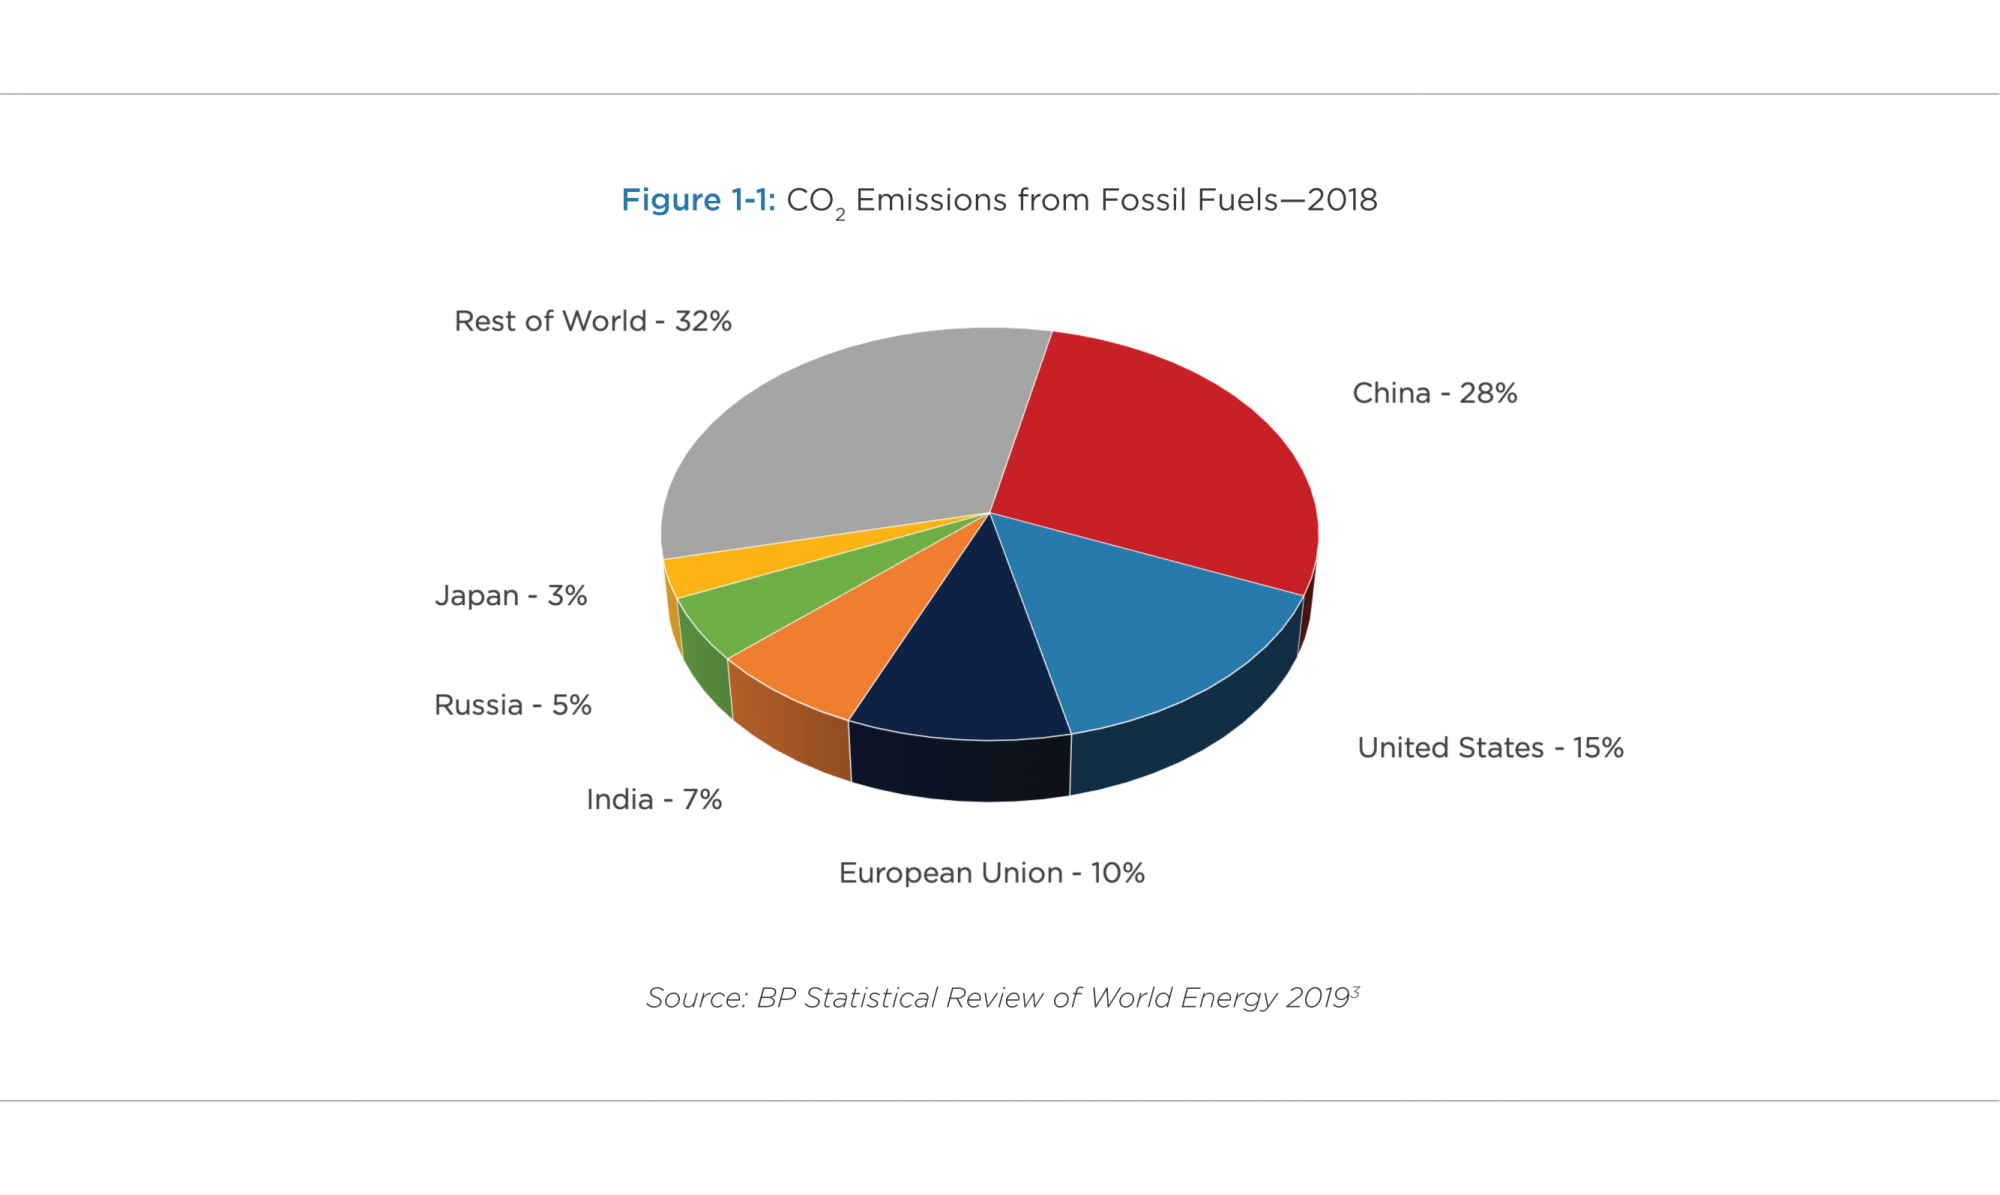 Figure 1-1: CO2 Emissions from Fossil Fuels—2018